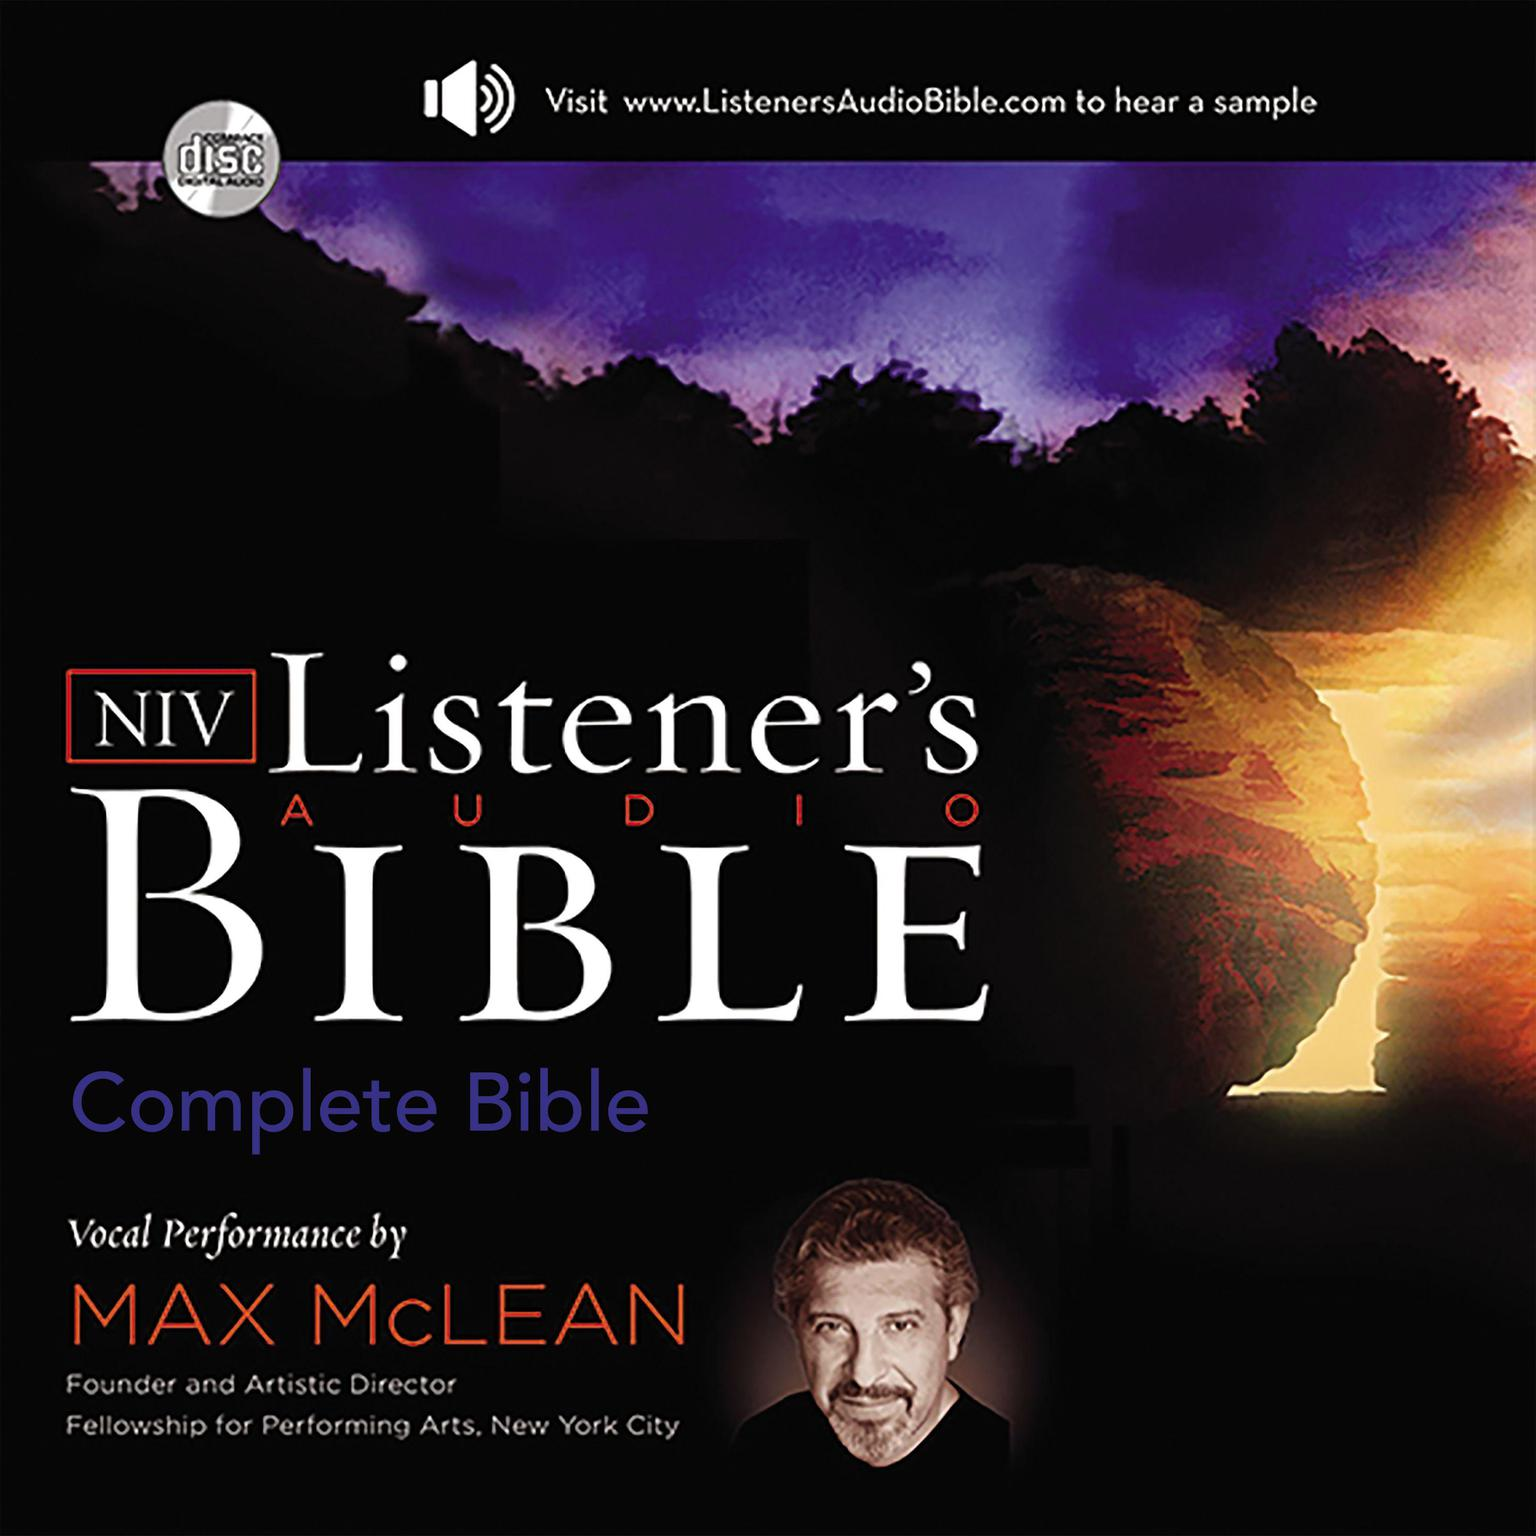 Printable Listener's Audio Bible - New International Version, NIV: Complete Bible: Vocal Performance by Max McLean Audiobook Cover Art